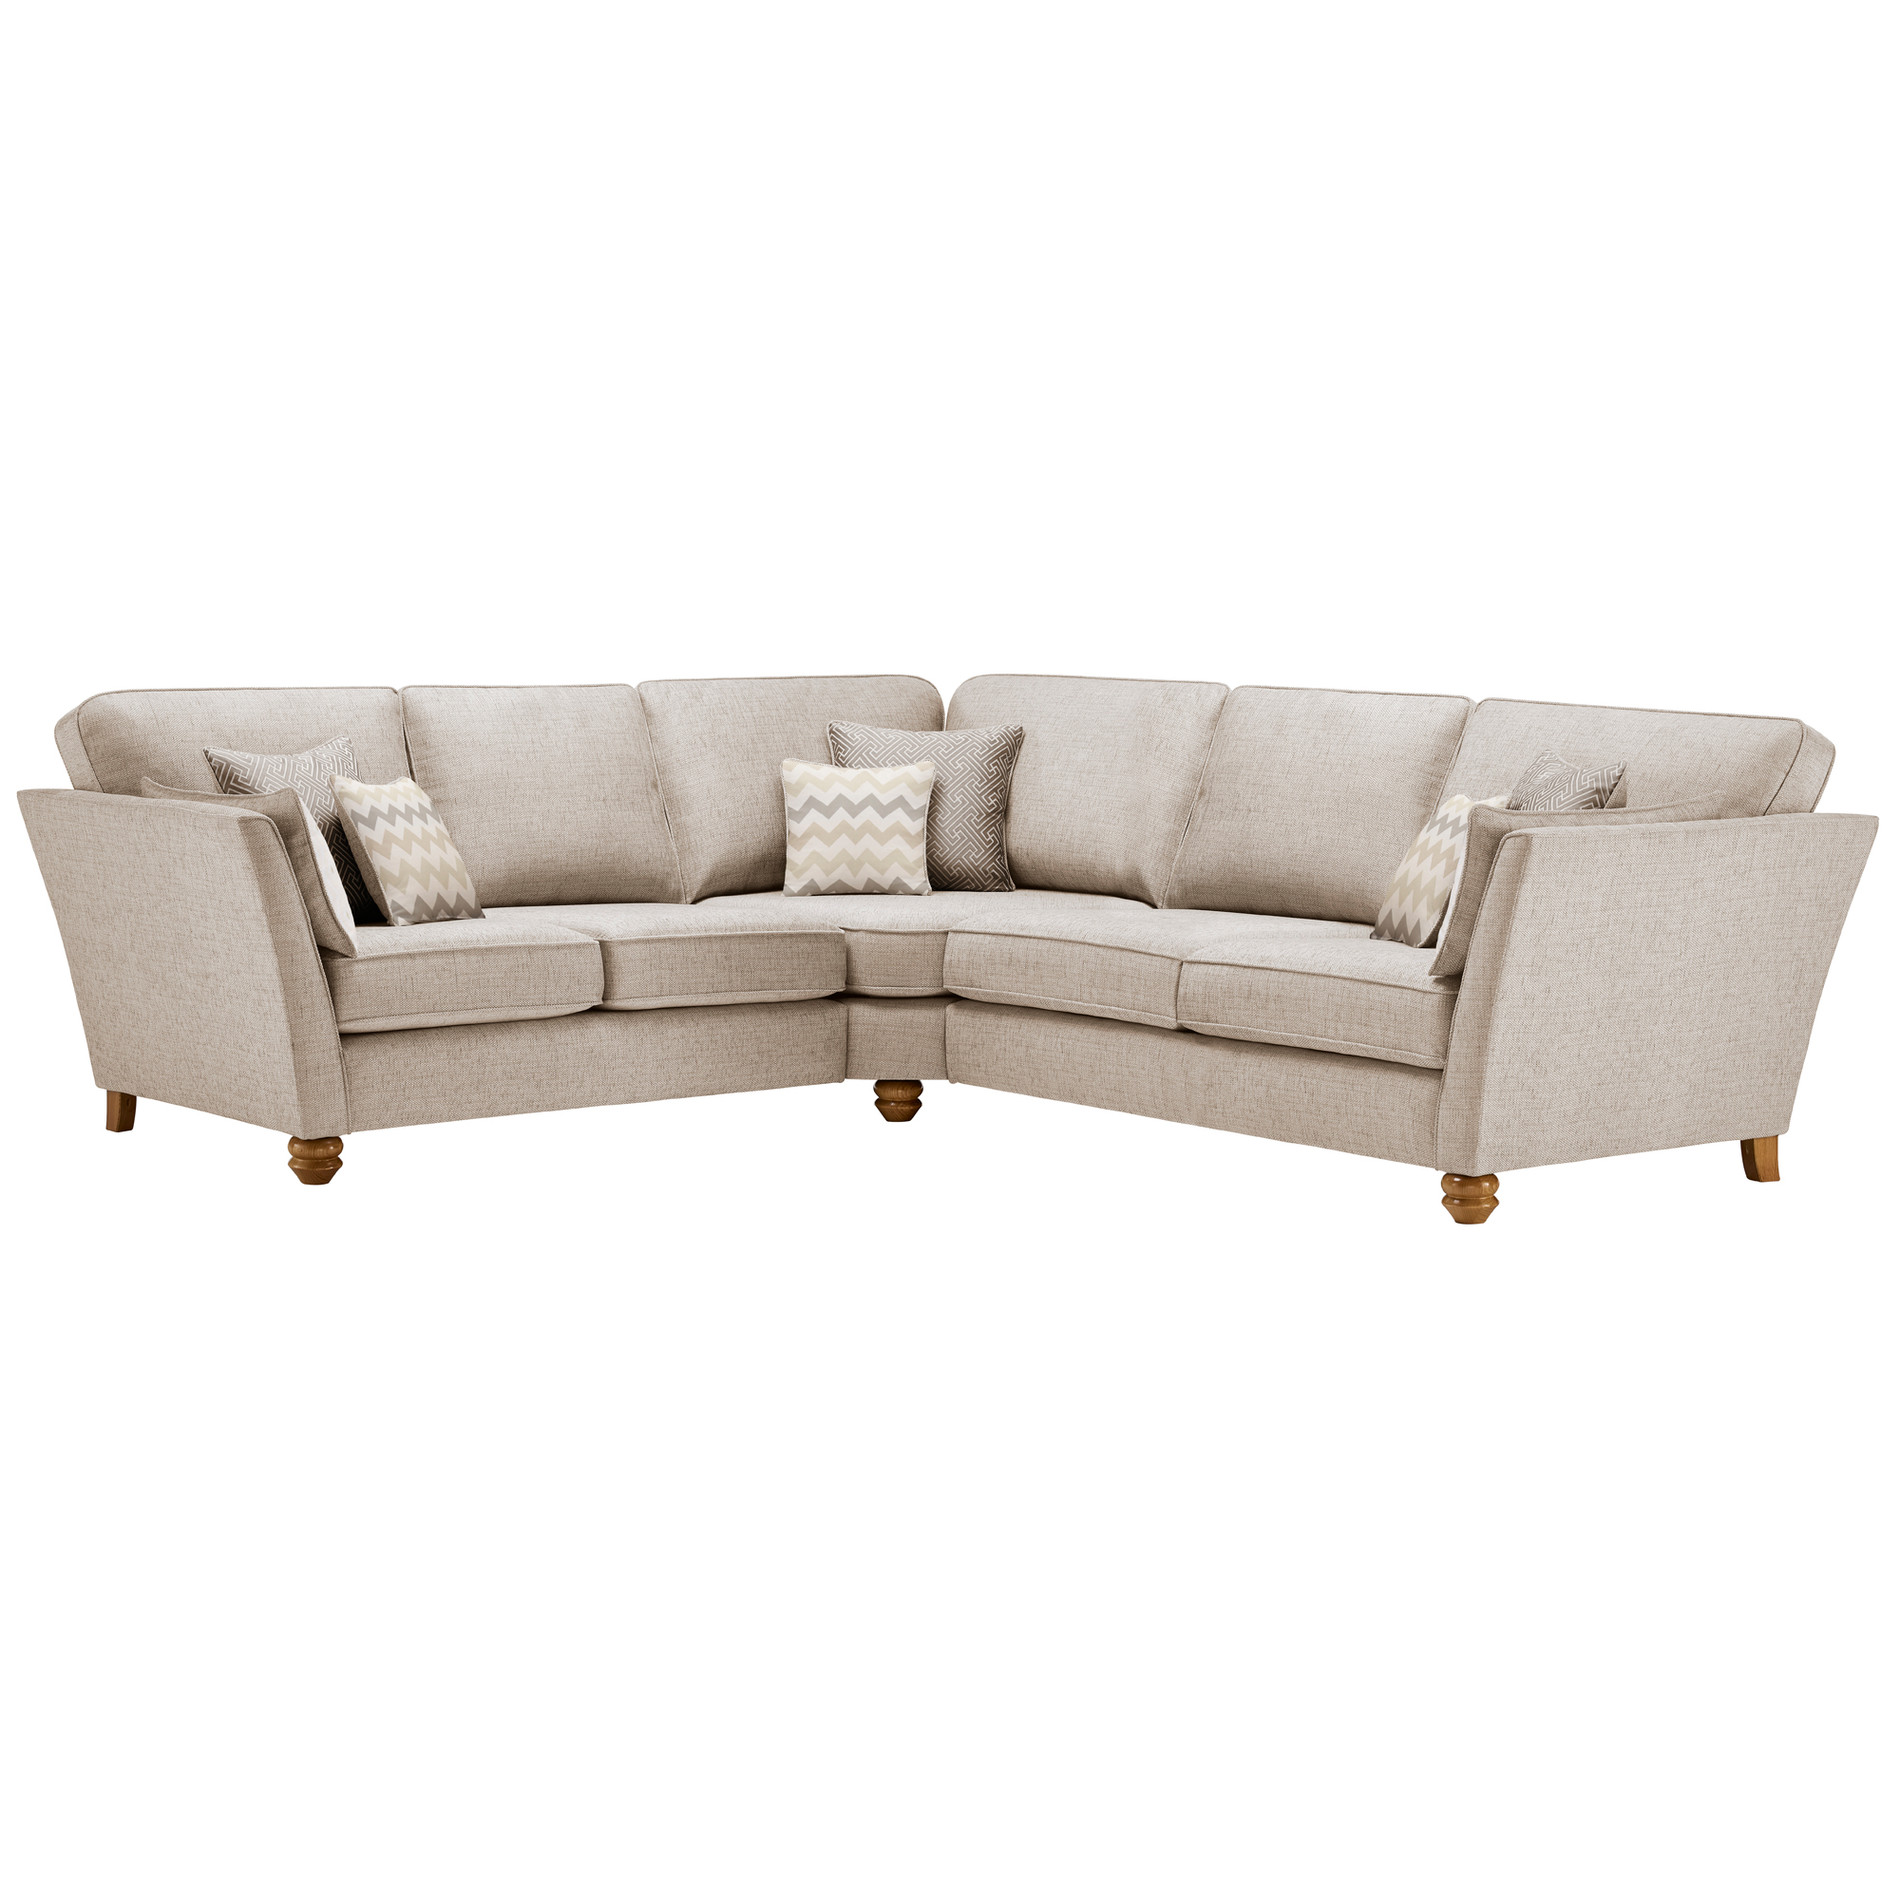 Gainsborough Large Corner Sofa in Beige + Beige Scatters